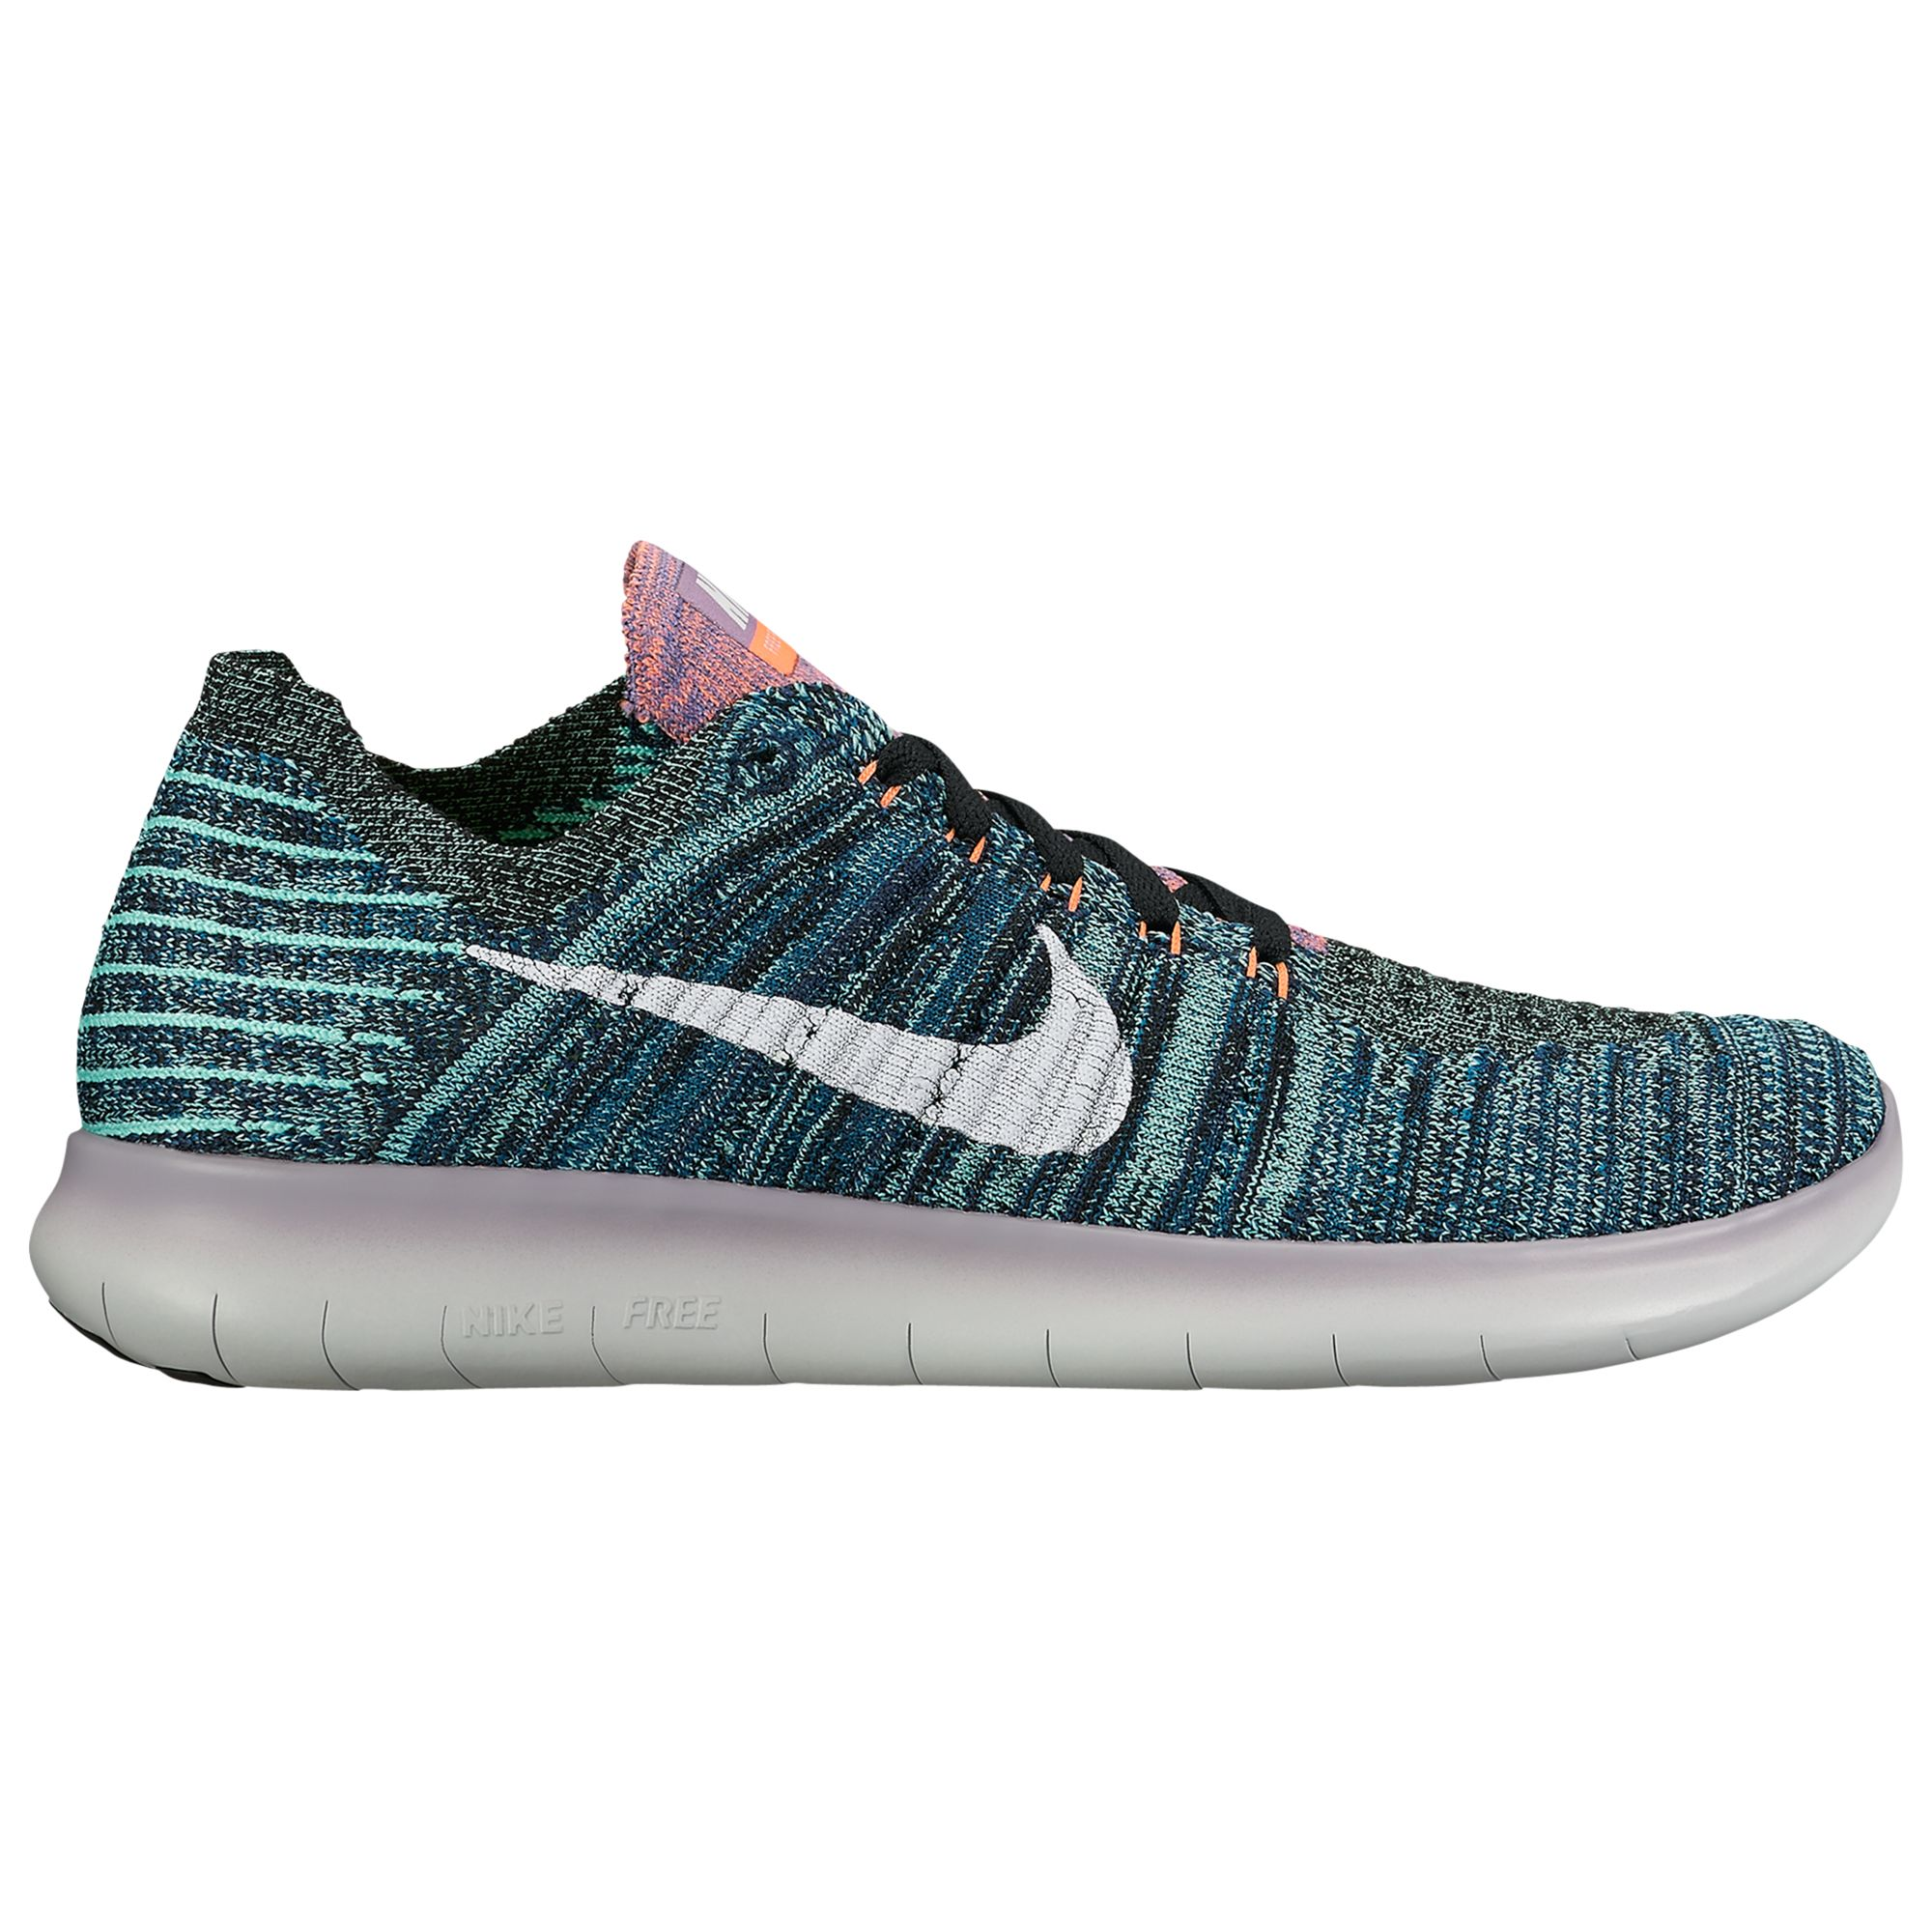 separation shoes 1cd56 55538 Nike Free RN Flyknit Women s Running Shoes at John Lewis   Partners